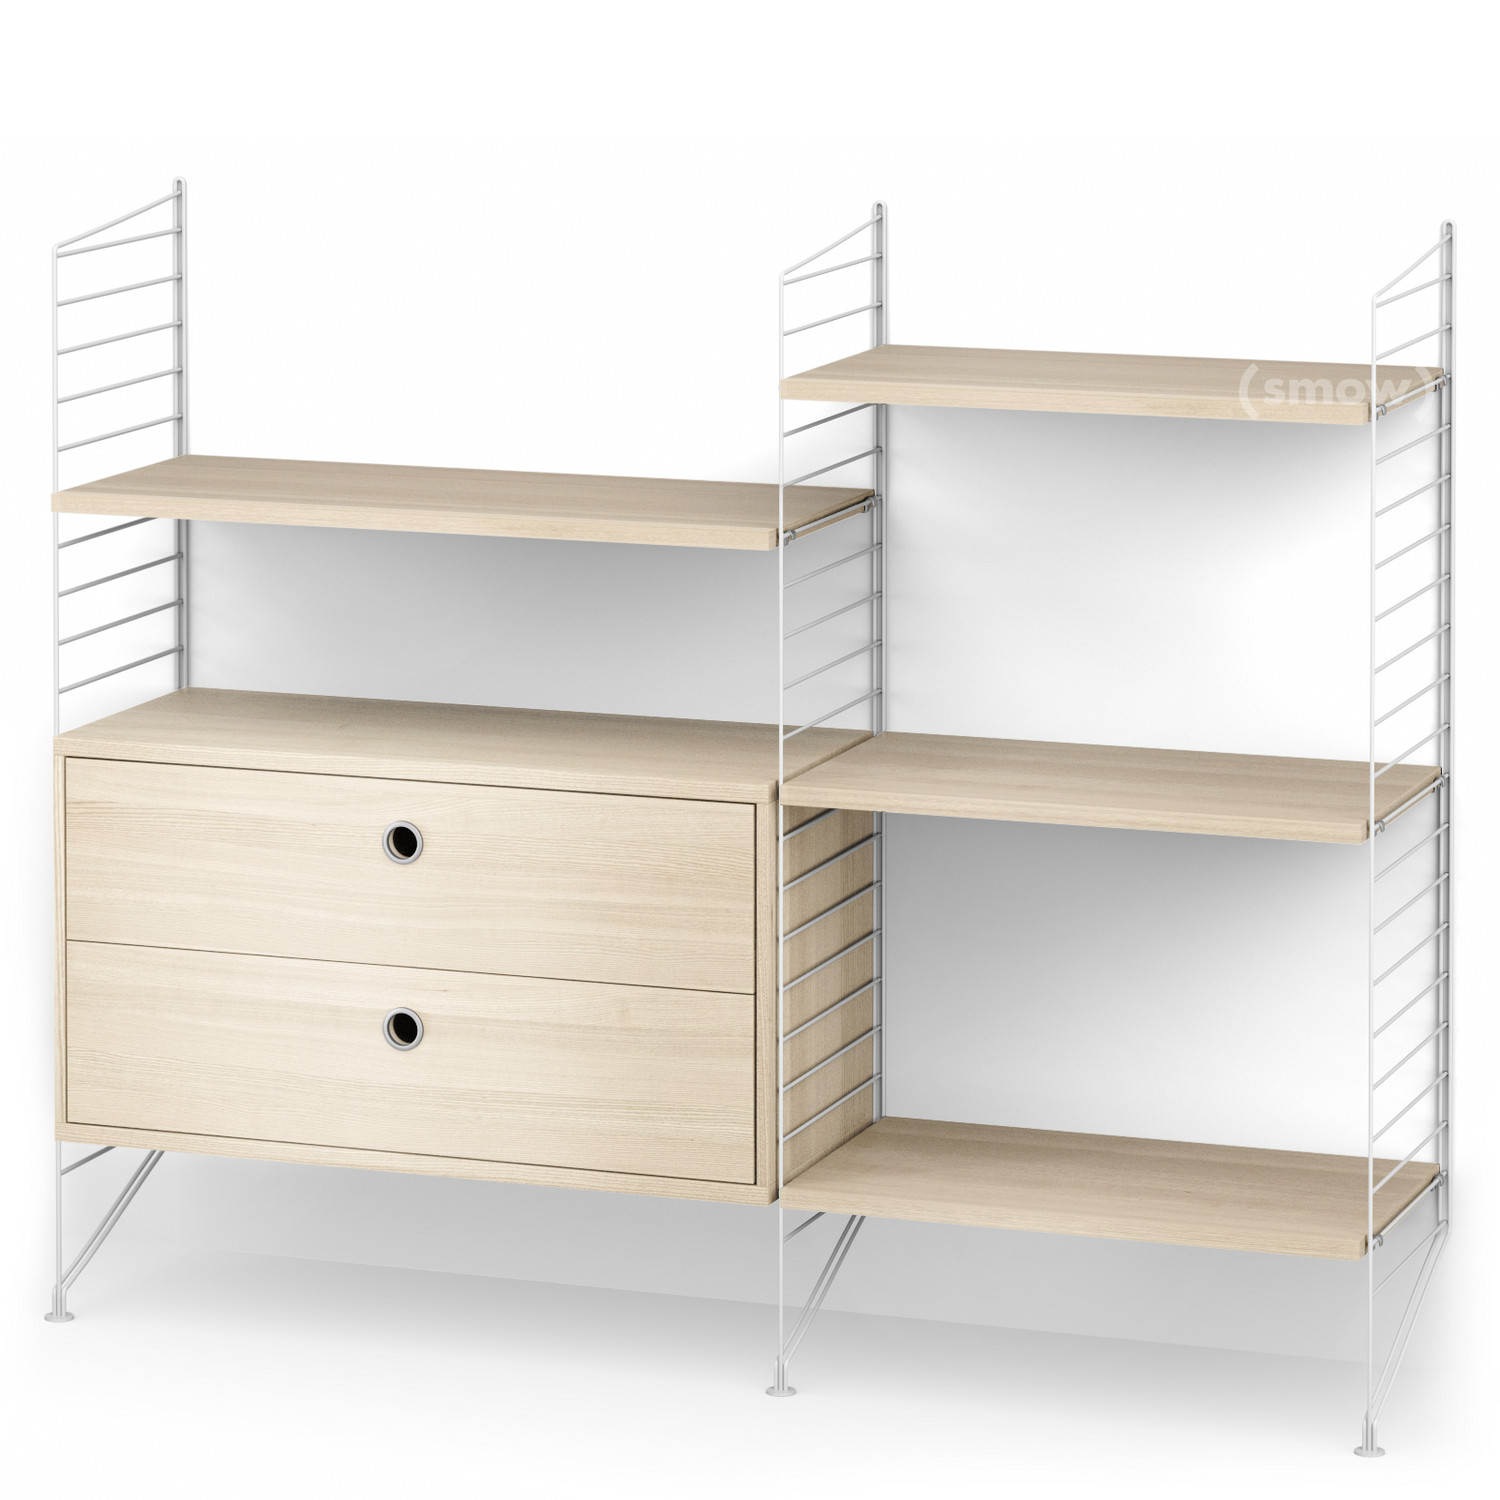 String System Floor Shelf With Drawers White|Ash Veneer